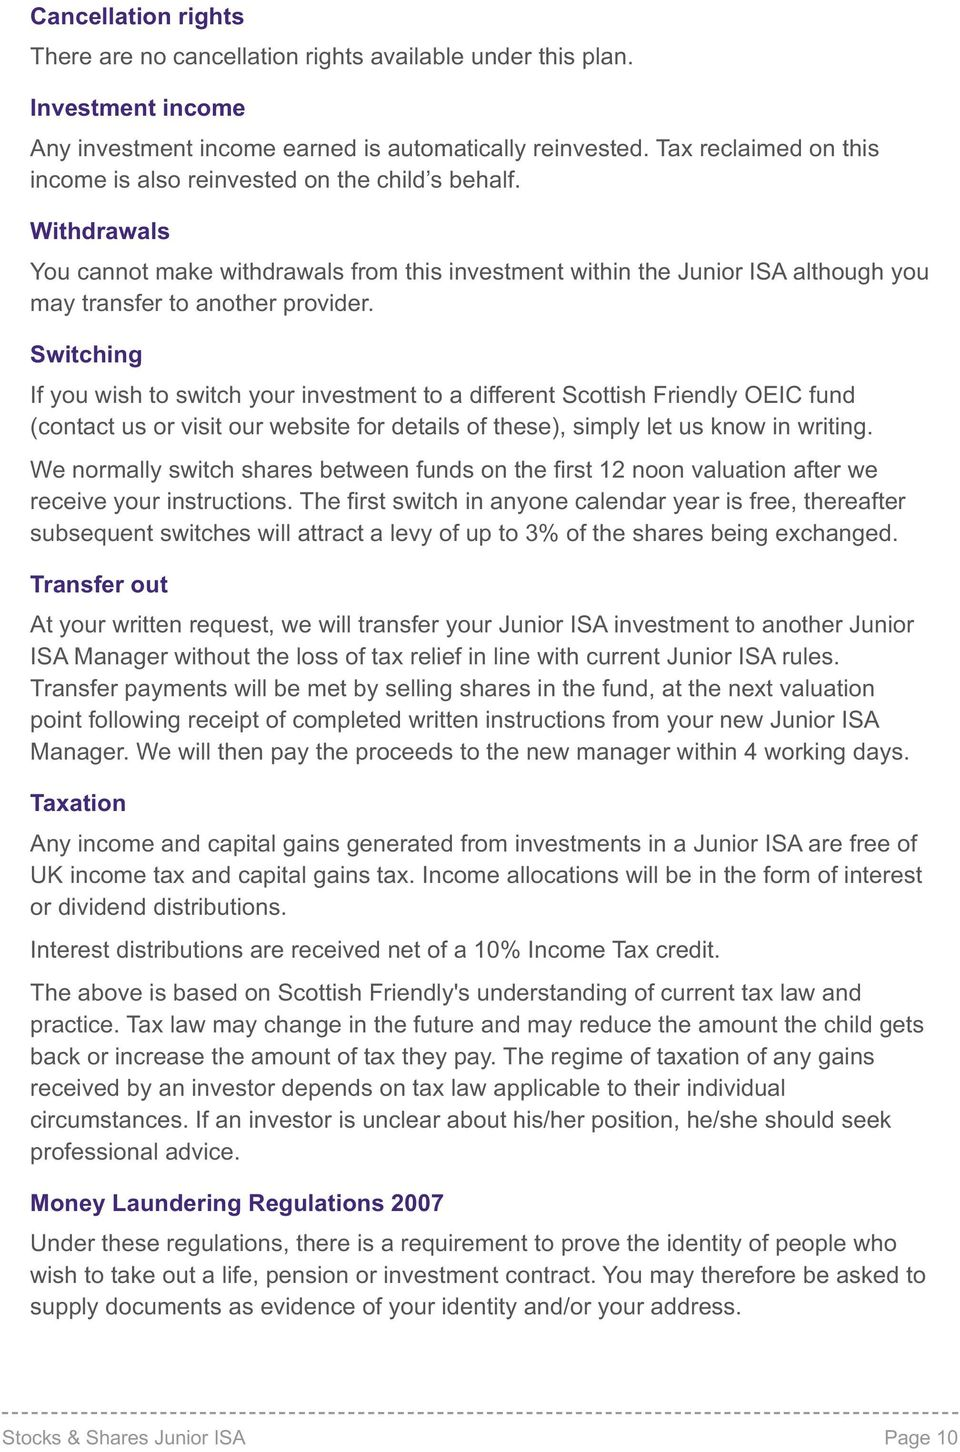 Switching If you wish to switch your investment to a different Scottish Friendy OEIC fund (contact us or visit our website for detais of these), simpy et us know in writing.